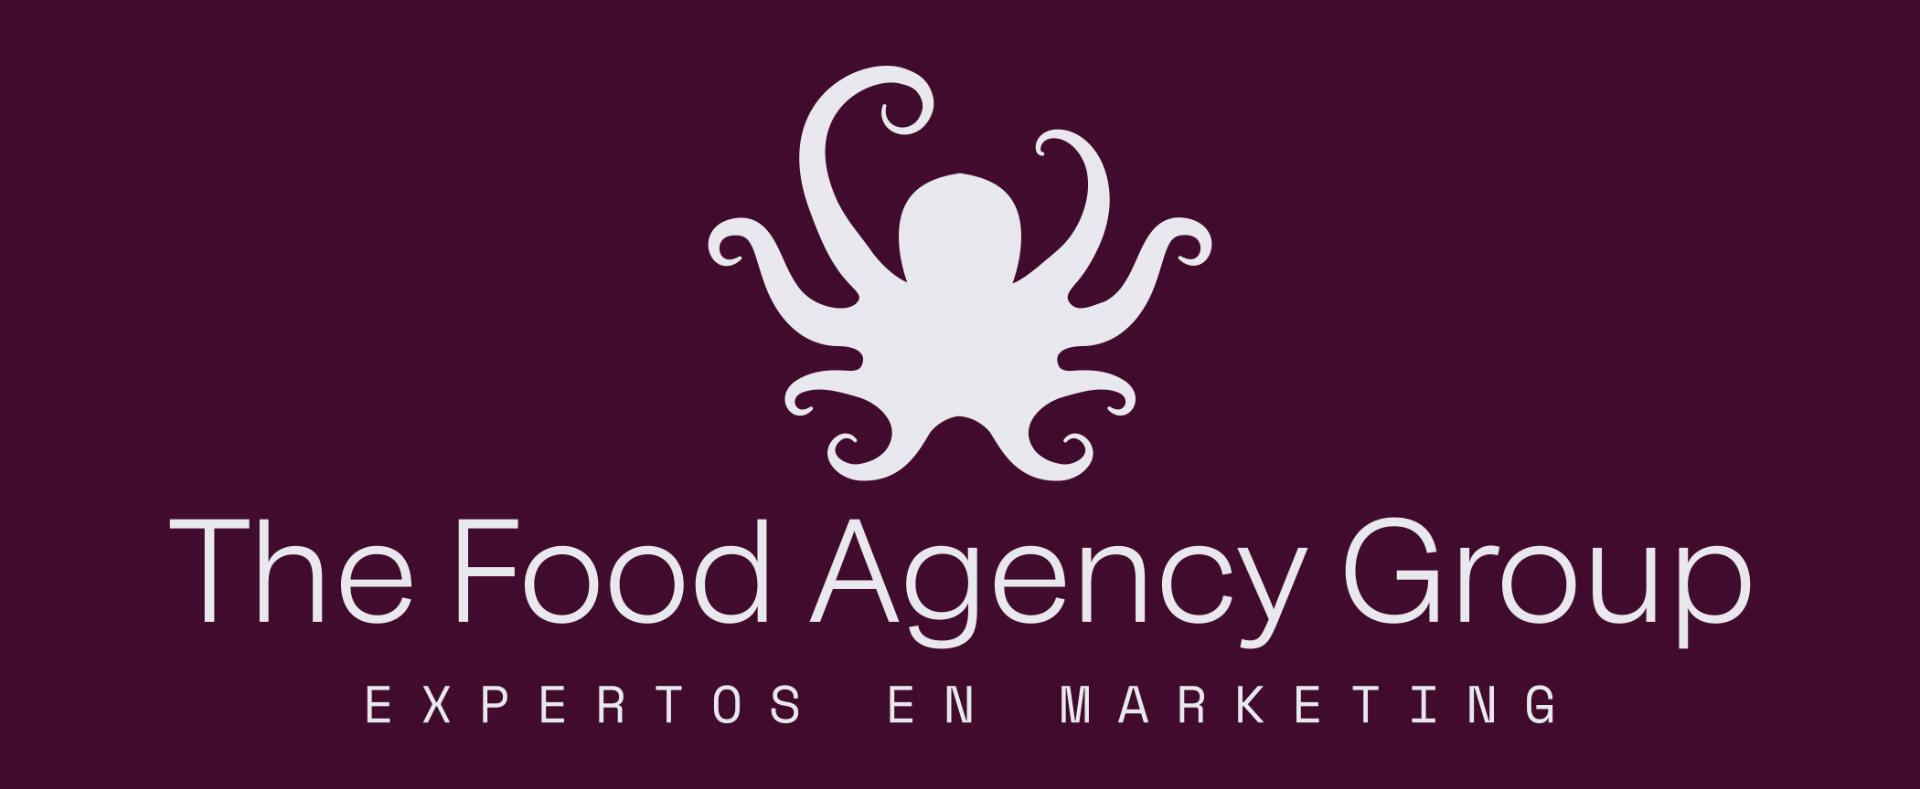 The Food Agency Group